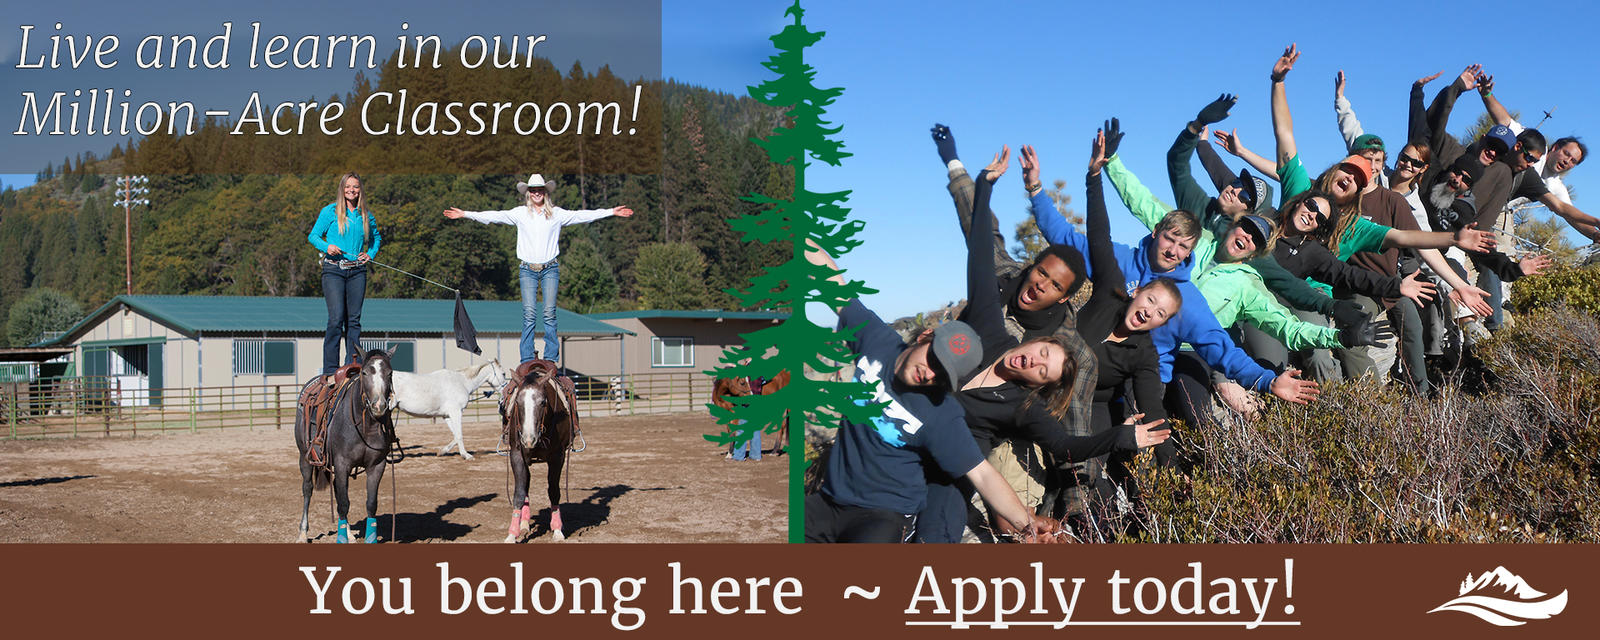 Live and learn in our million acre classroom, you belong here, apply today